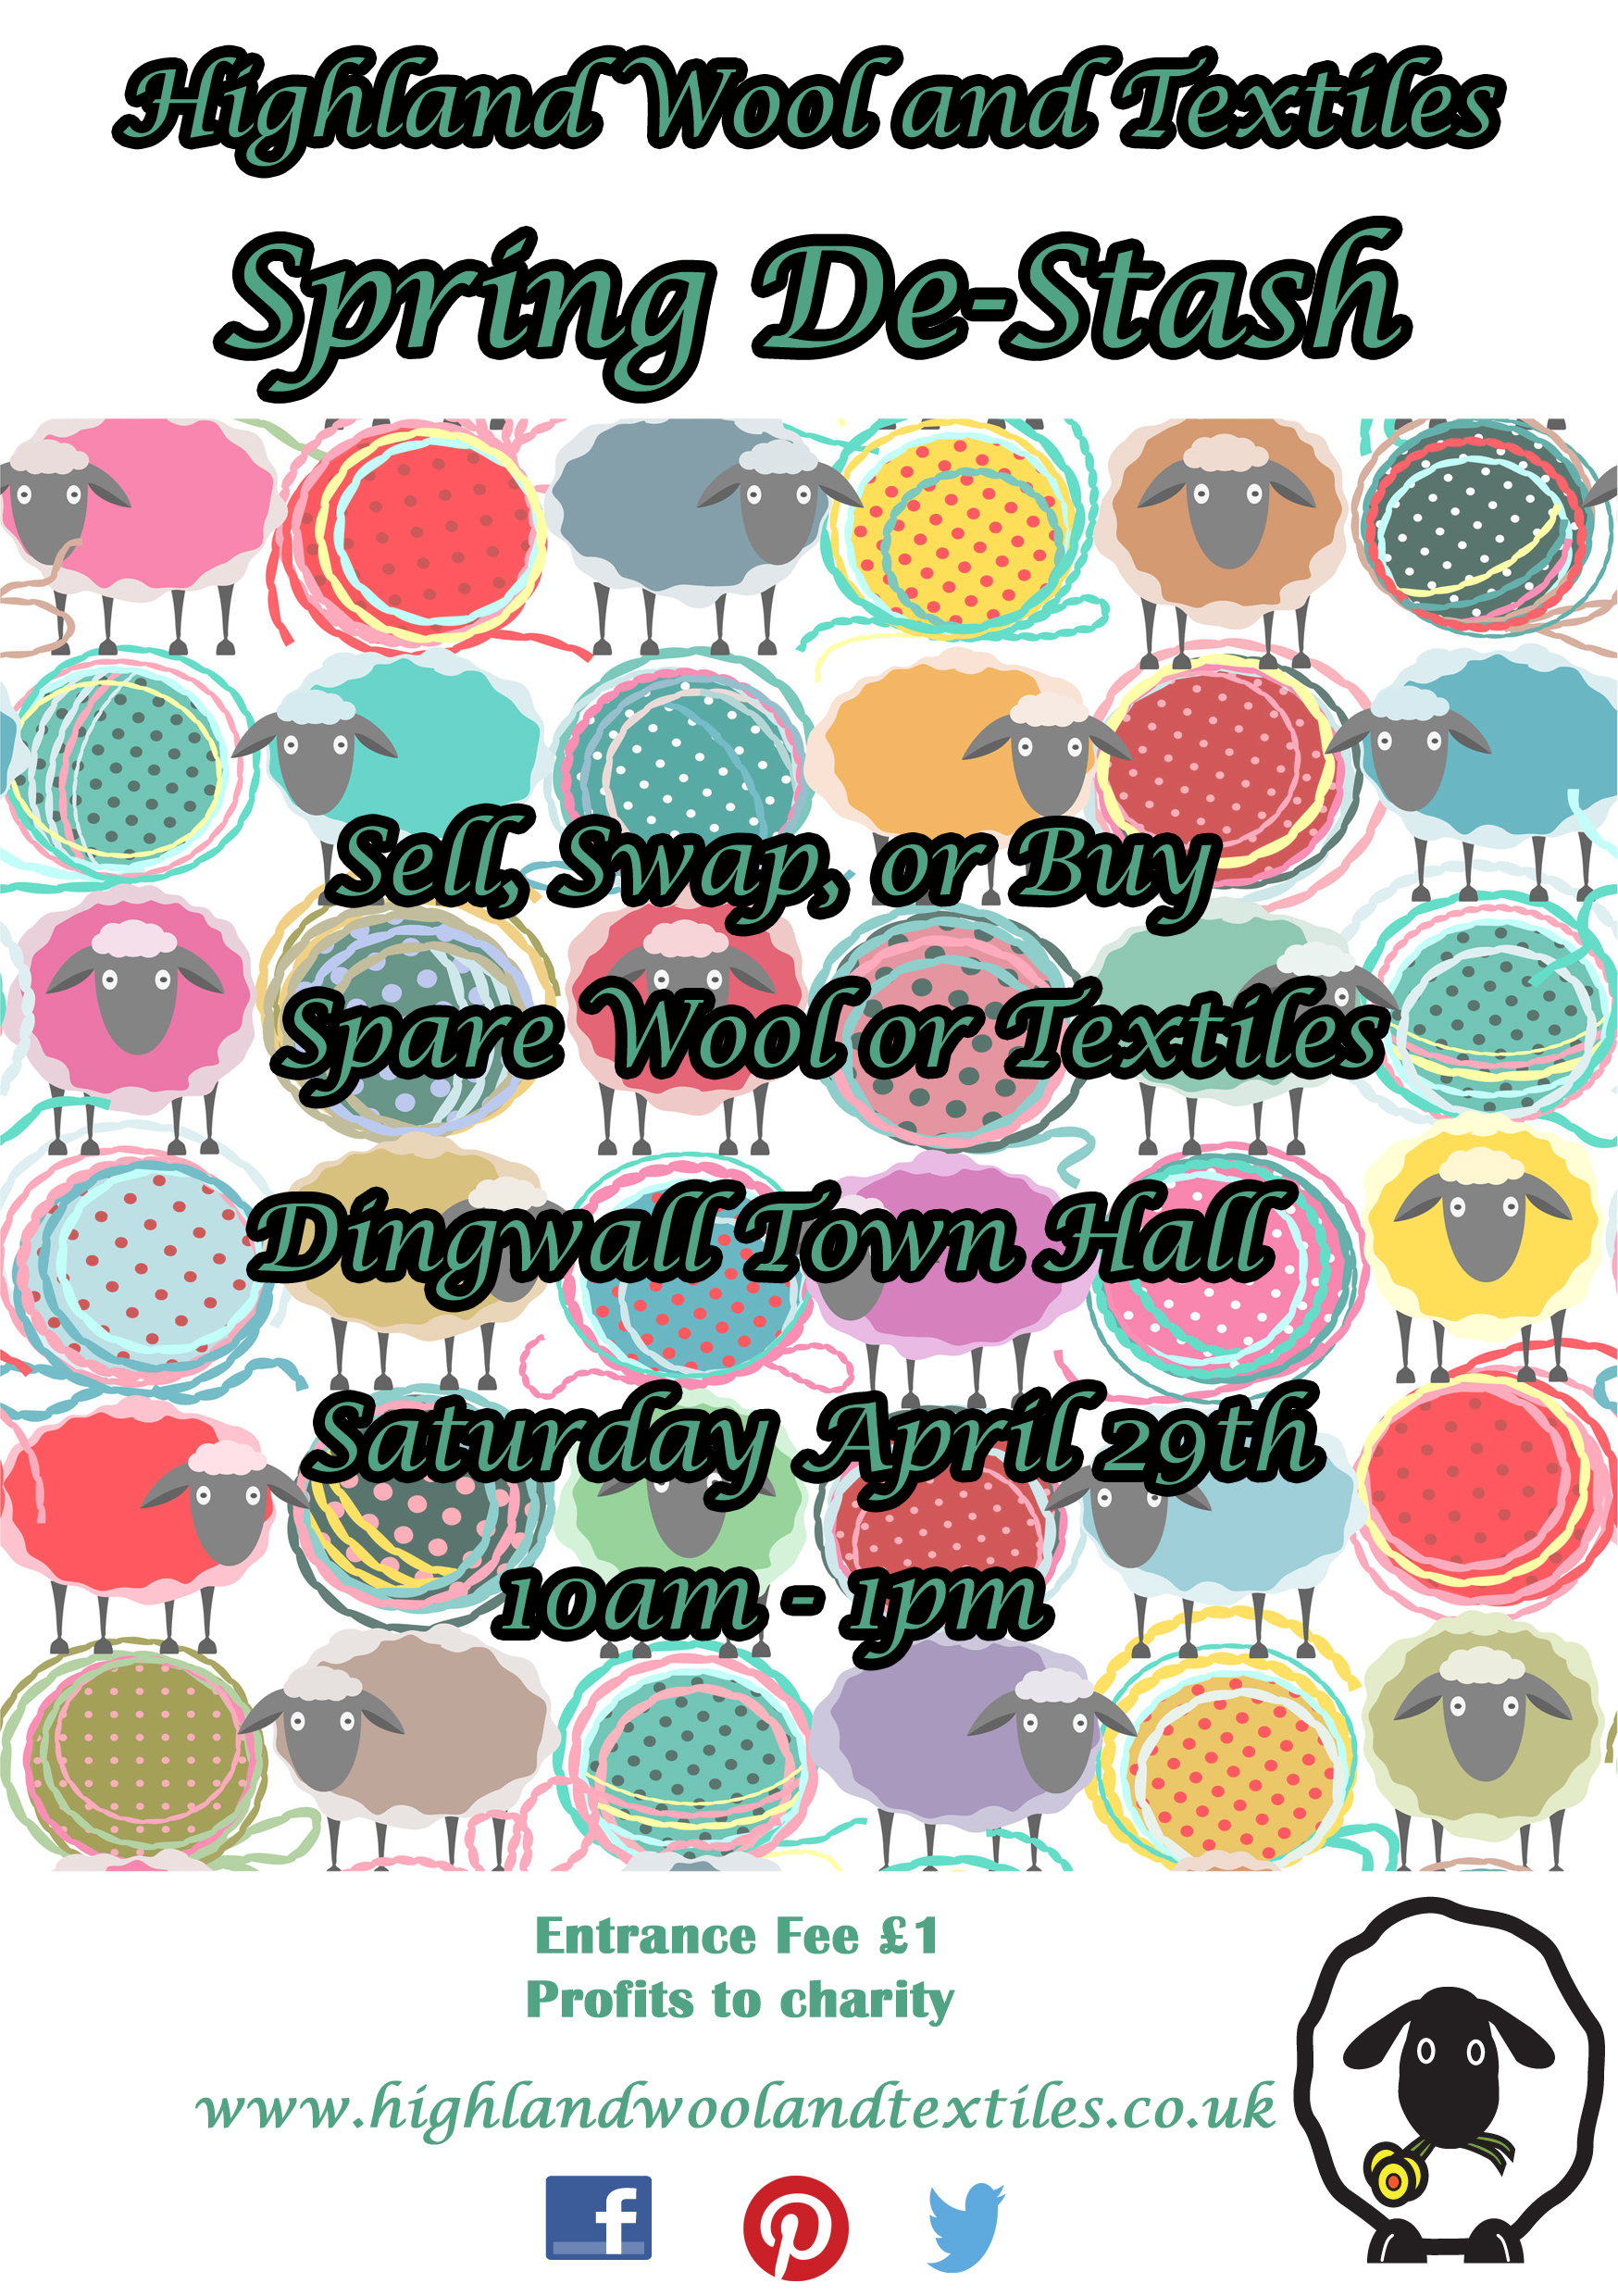 De-Stash Sat April 29th at Dingwall Town Hall.  Buy,Swap or sell all things Wool and Textile related